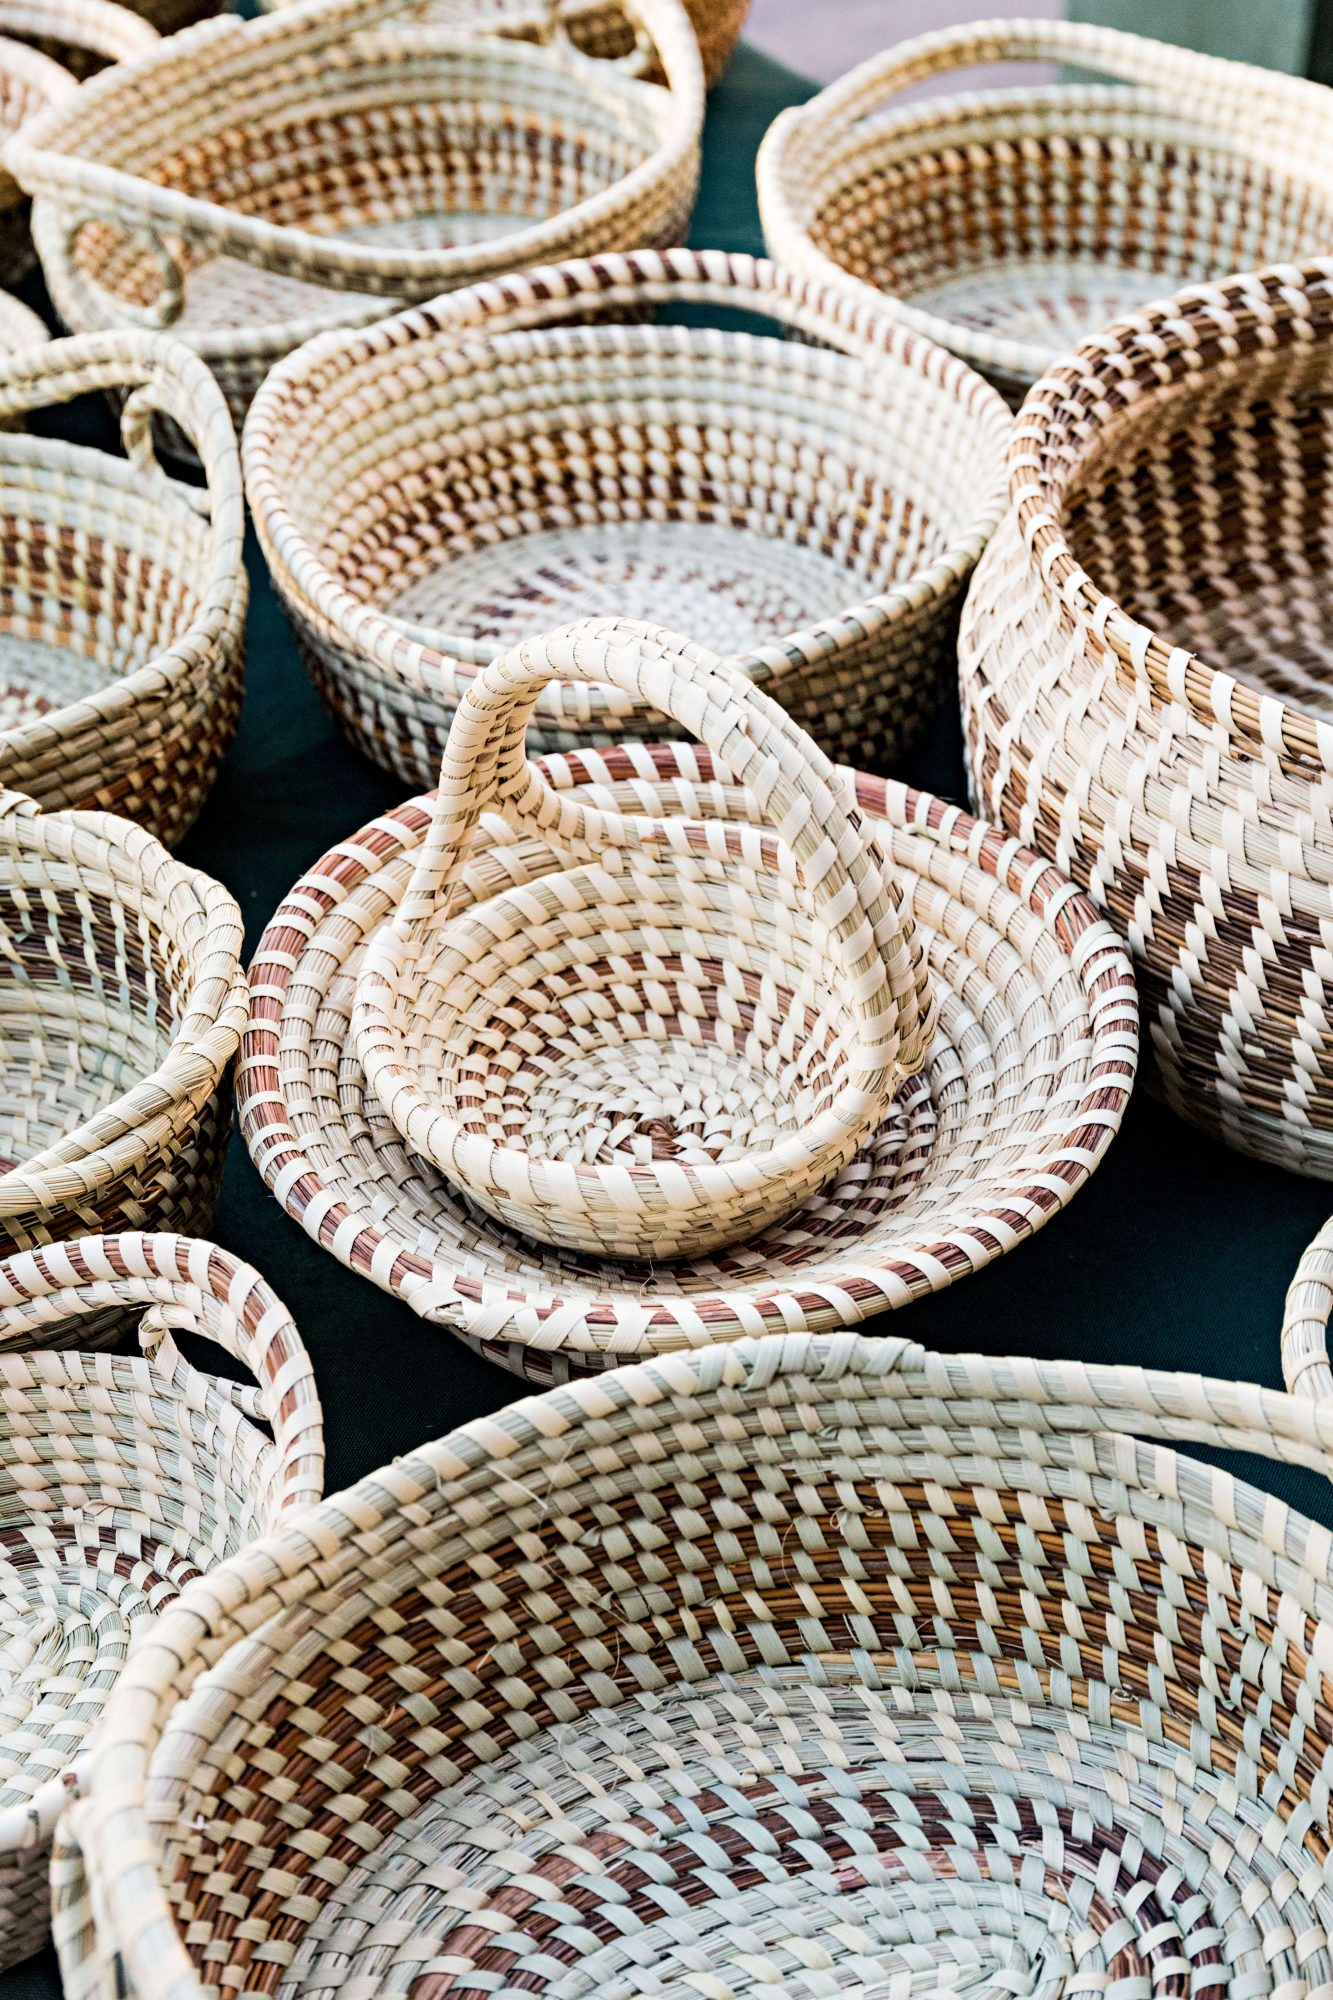 Sweetgrass baskets by Corey Alston